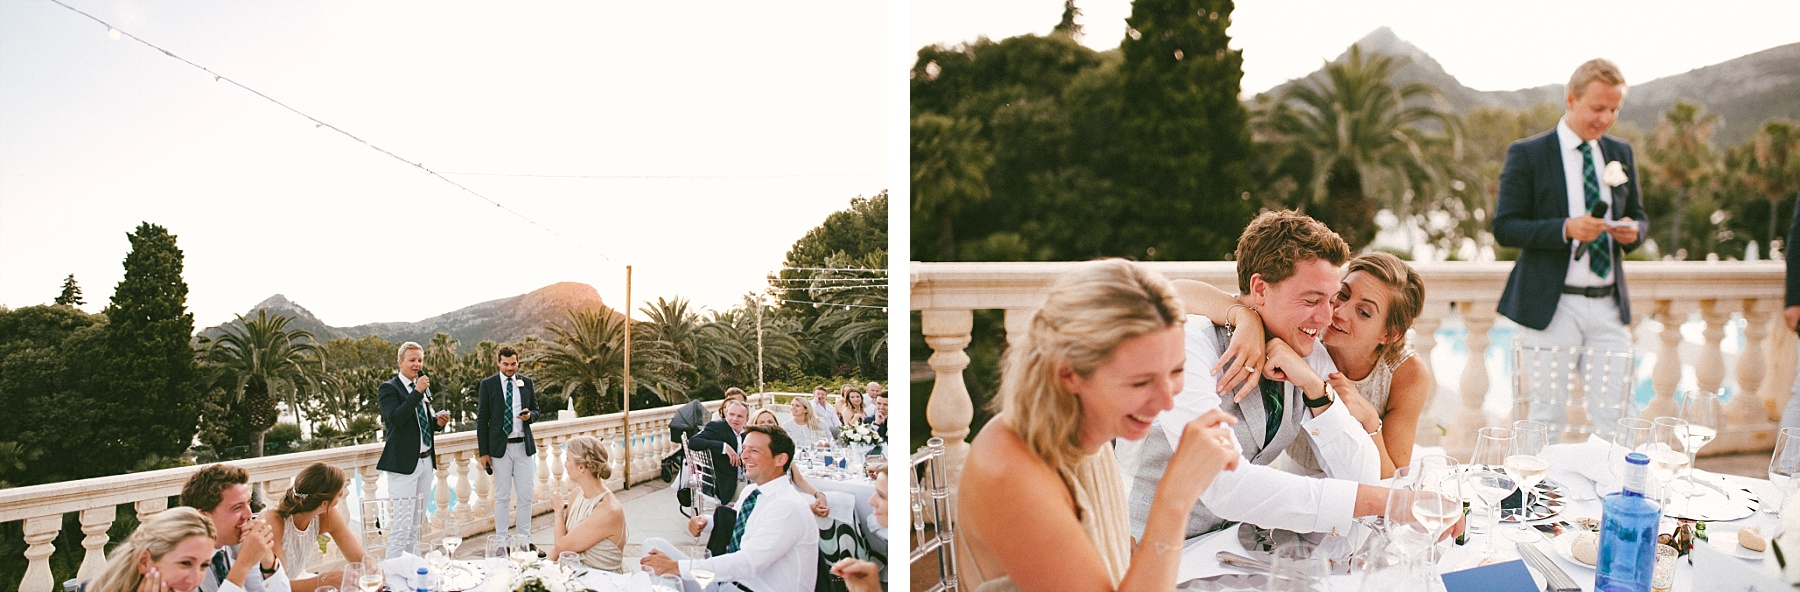 Getting married in Majorca